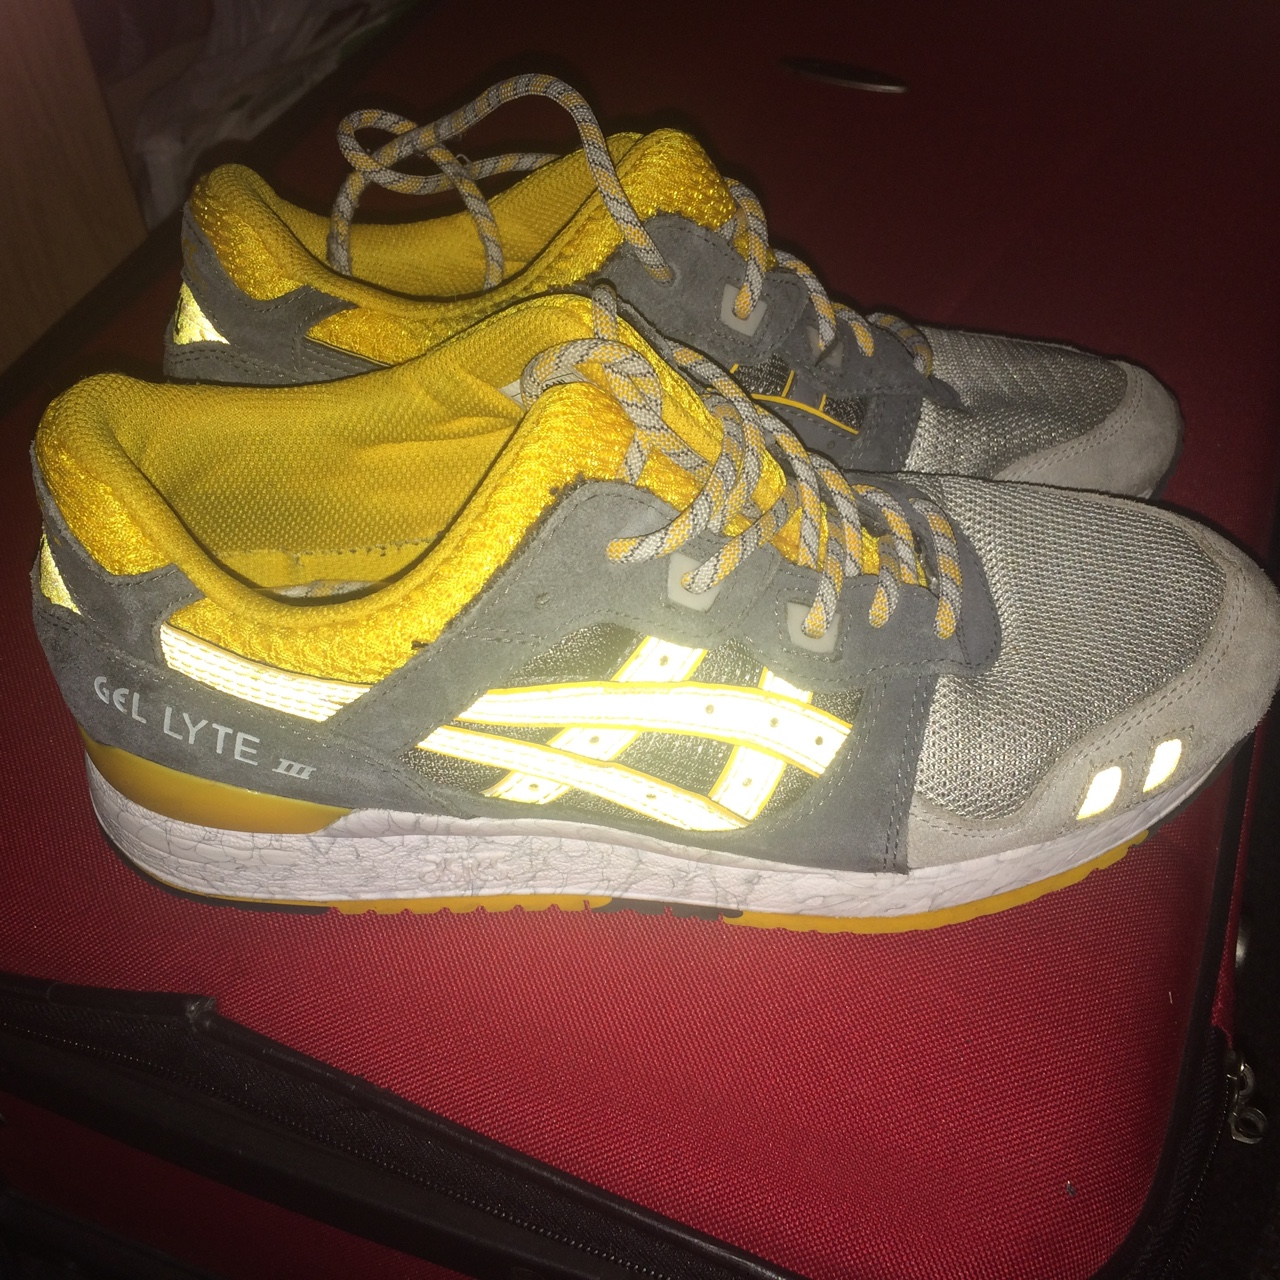 new styles b64dd 1d558 Asics Gel Lyte 3 reflective in yellow and grey. 8:10... - Depop